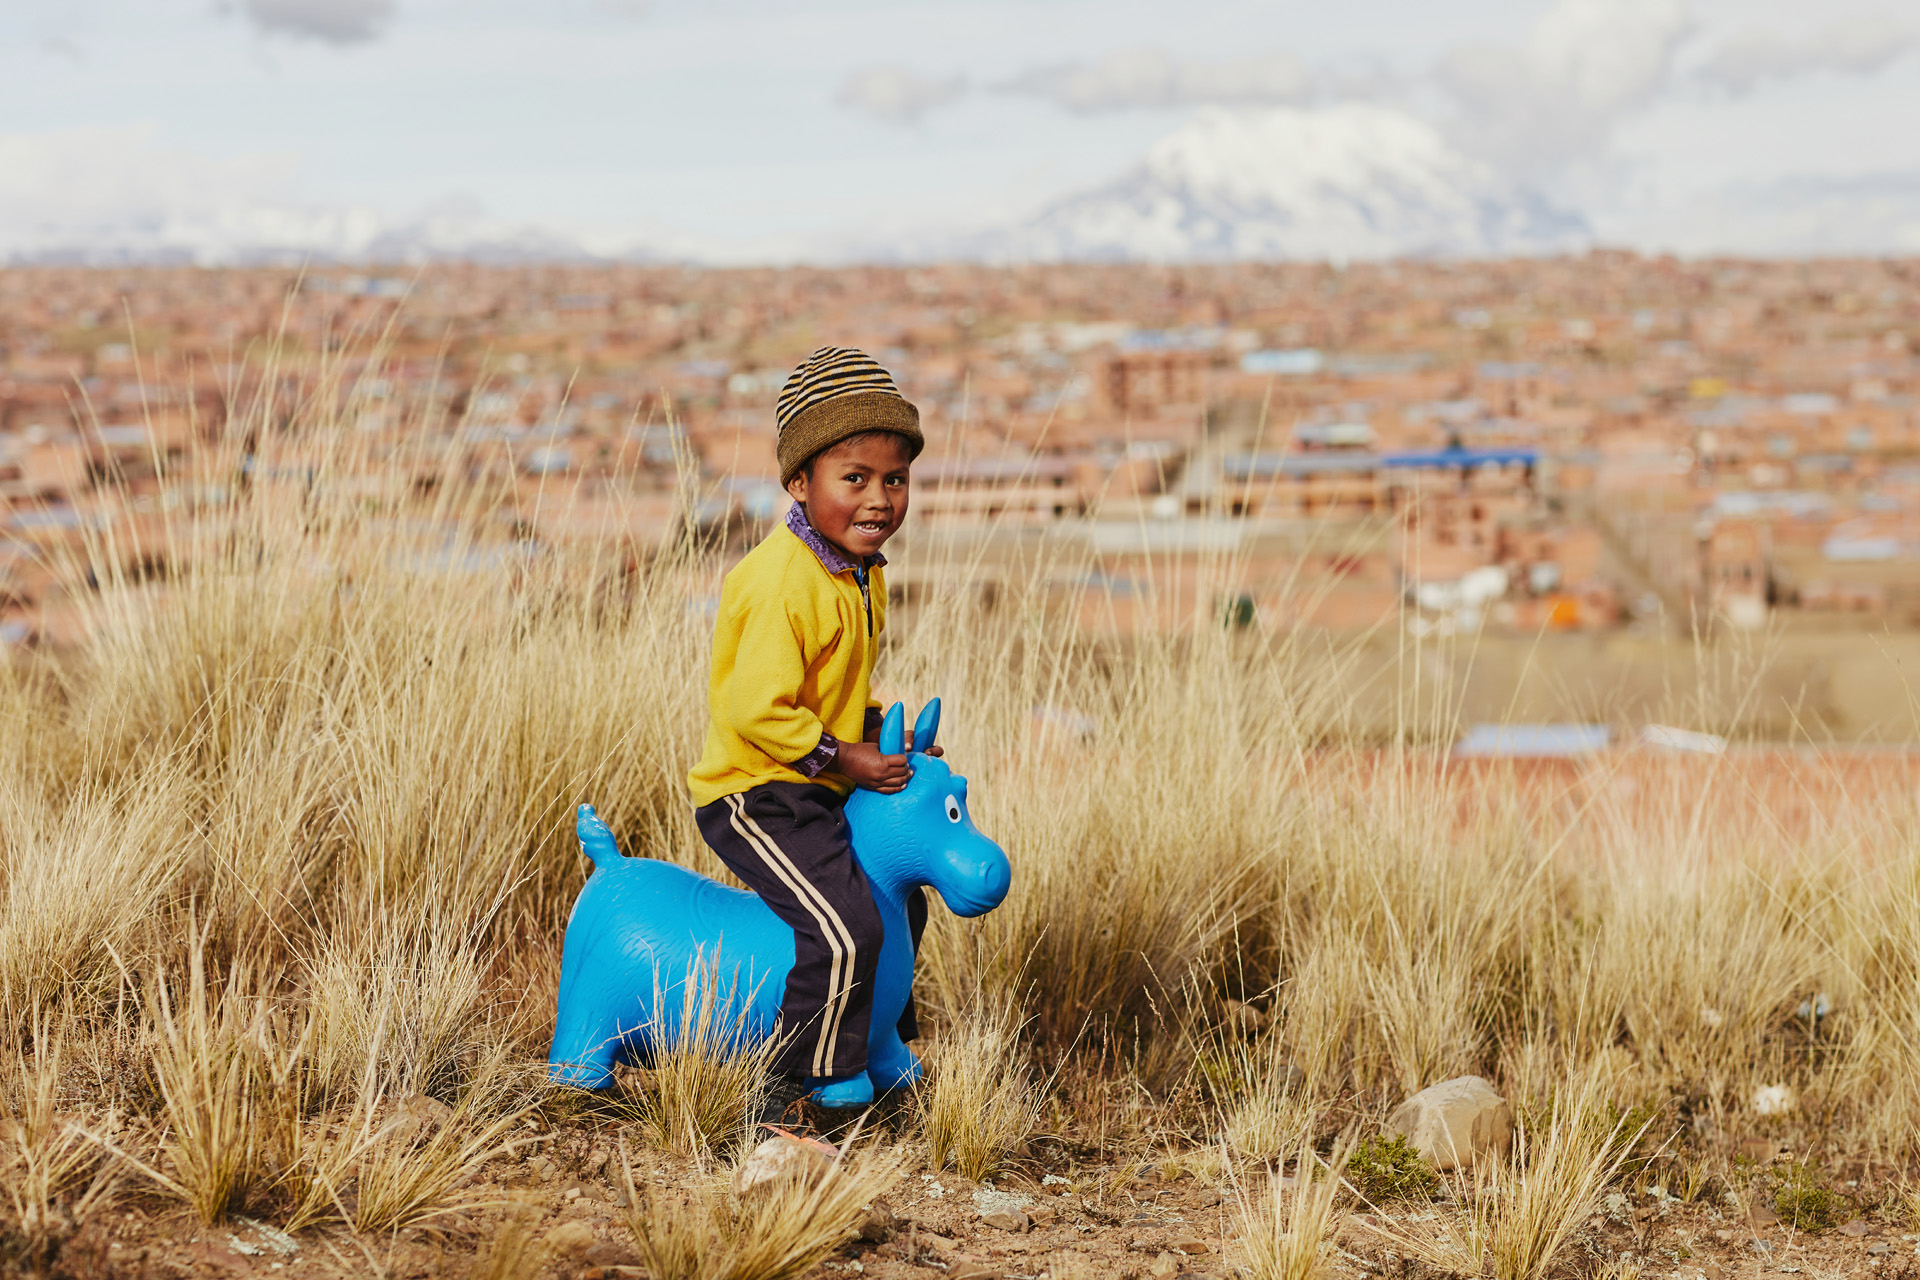 Clever, a 7-year-old Bolivian boy in Compassion's program plays with a gift from his sponsor